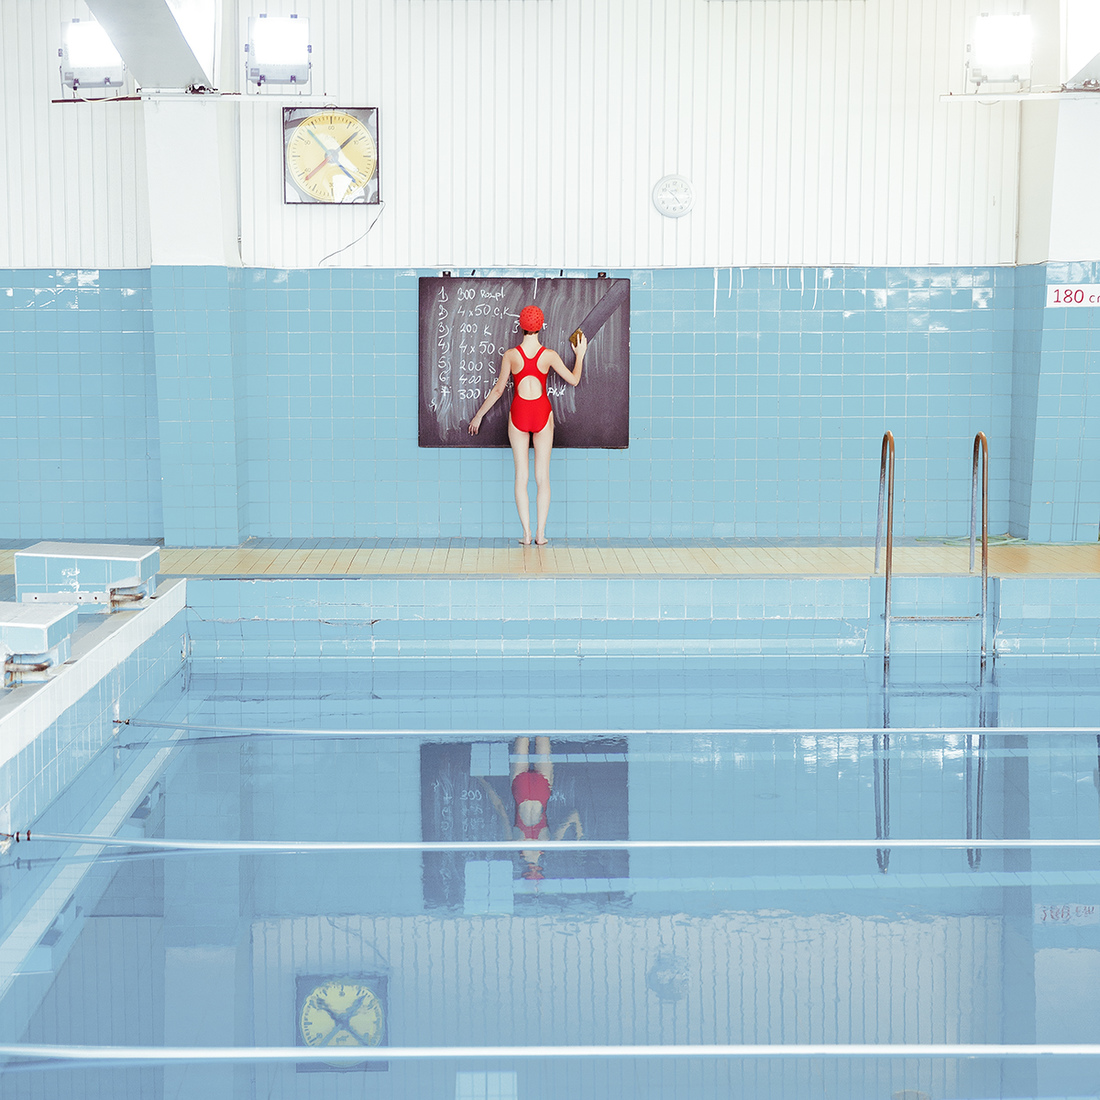 Dating county swimming pool